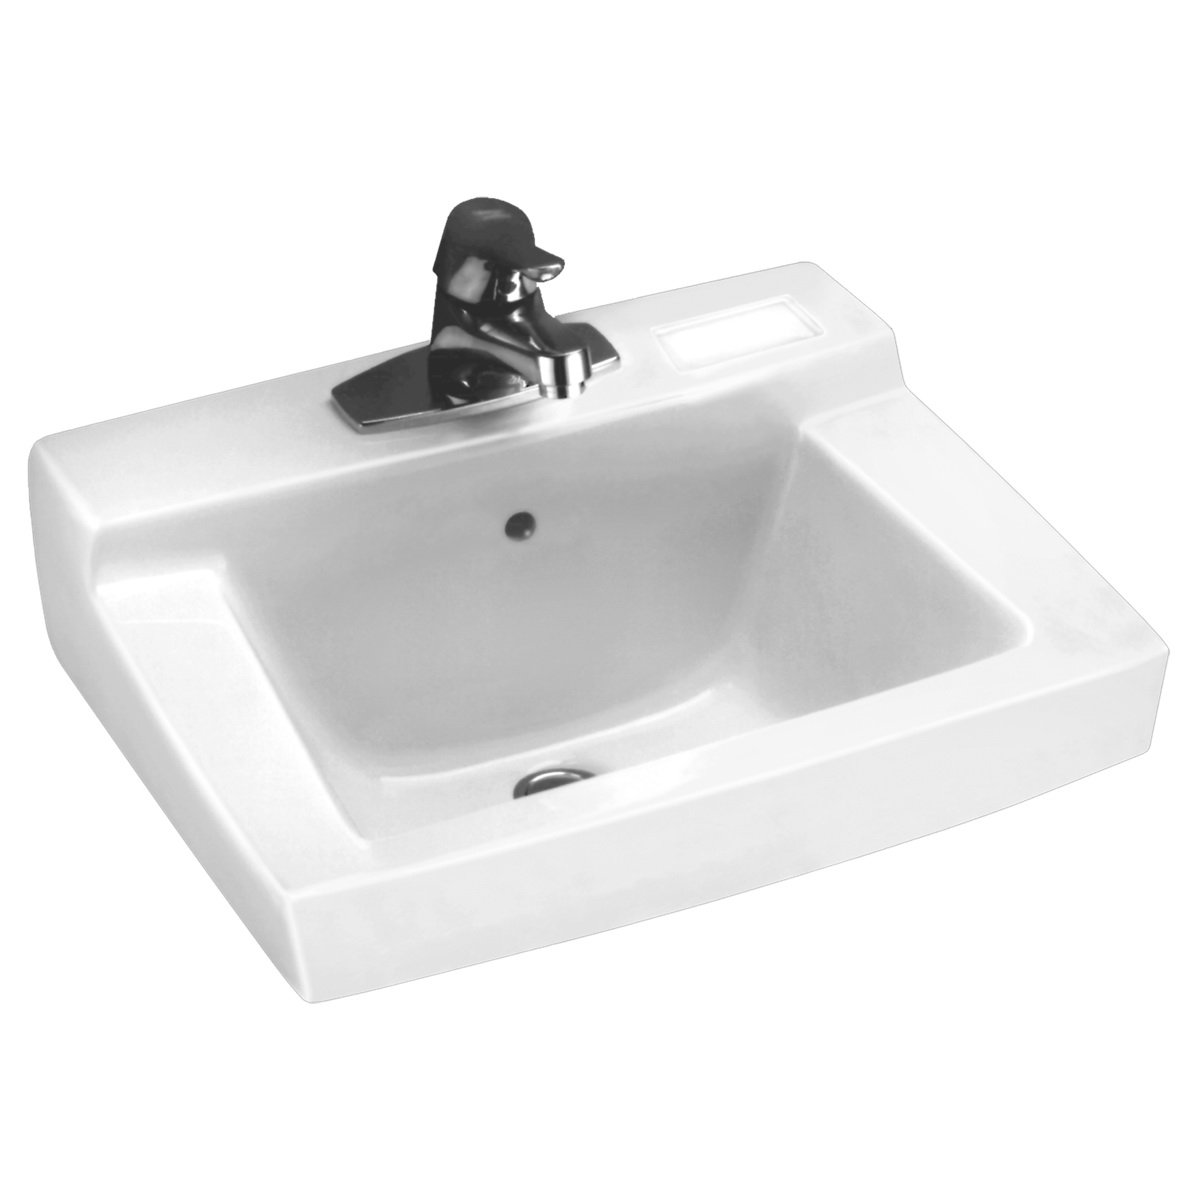 American Standard Declyn™ 0321.075.020 White Vitreous China Wall Mount Lavatory Sink, 1-Bowl, 3-Faucet Holes